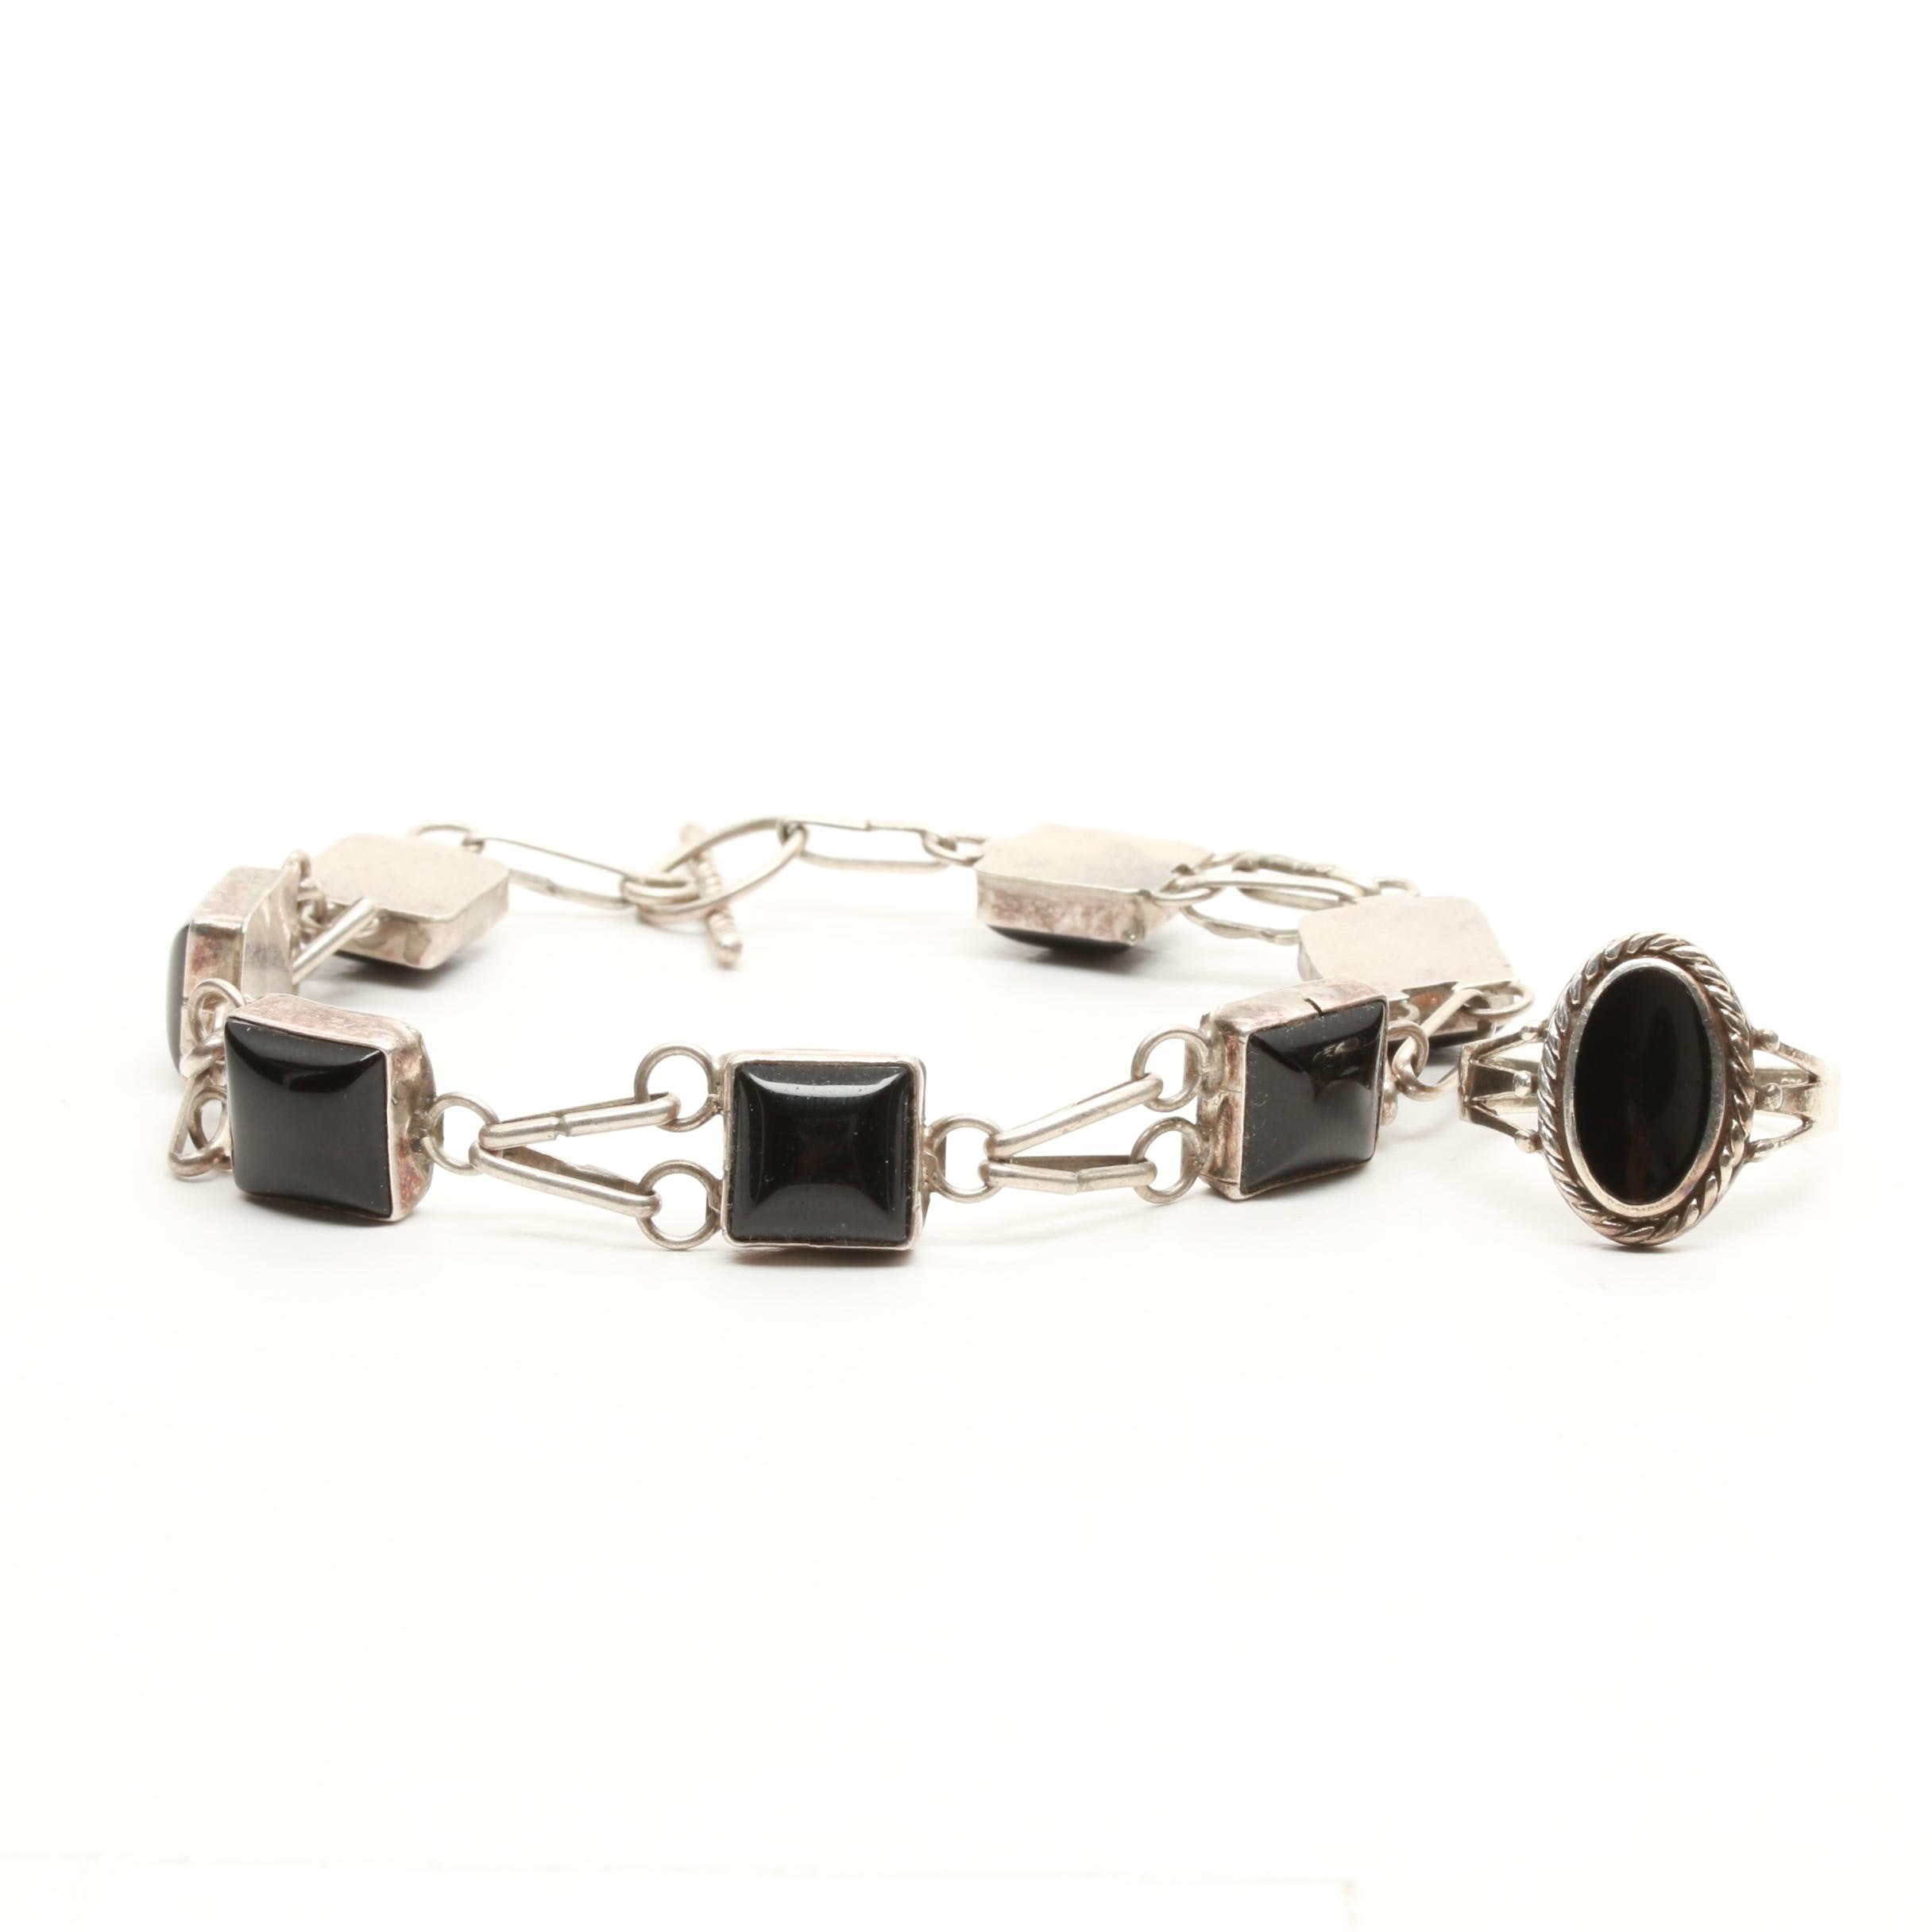 Sterling Silver Imitation Onyx and Onyx Bracelet and Ring